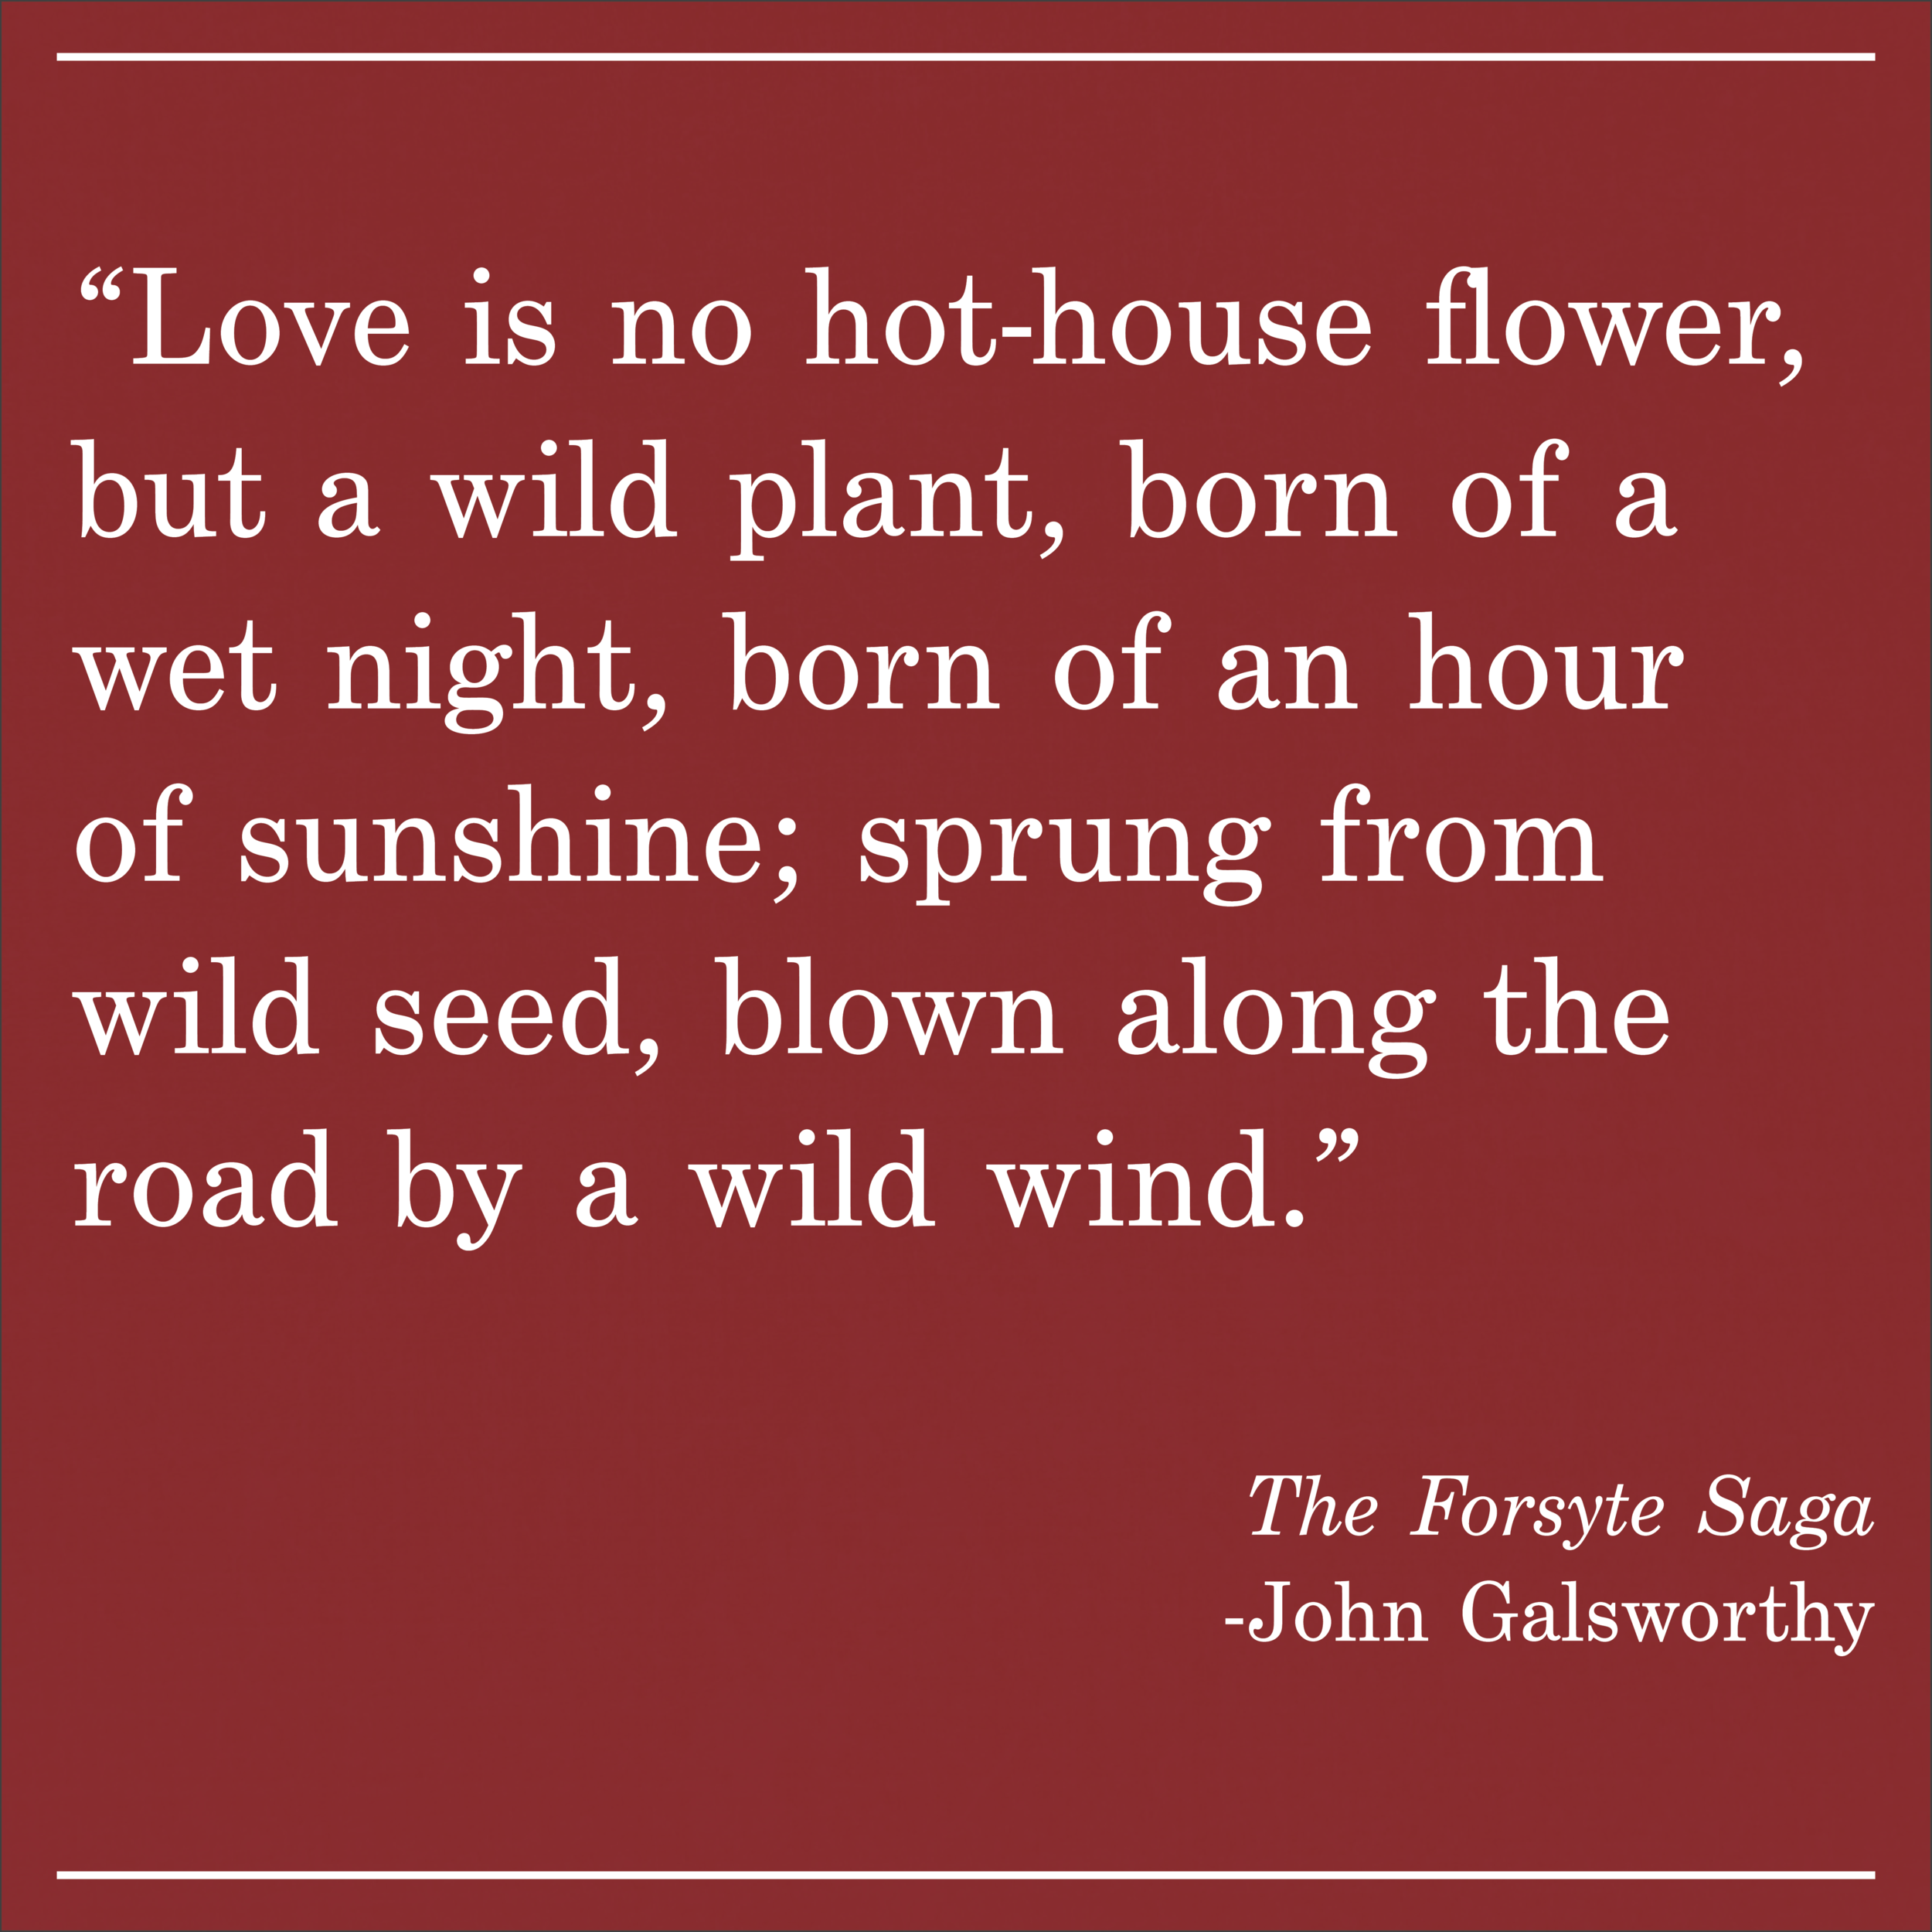 Daily Quote The Forsyte Saga by John Galsworthy